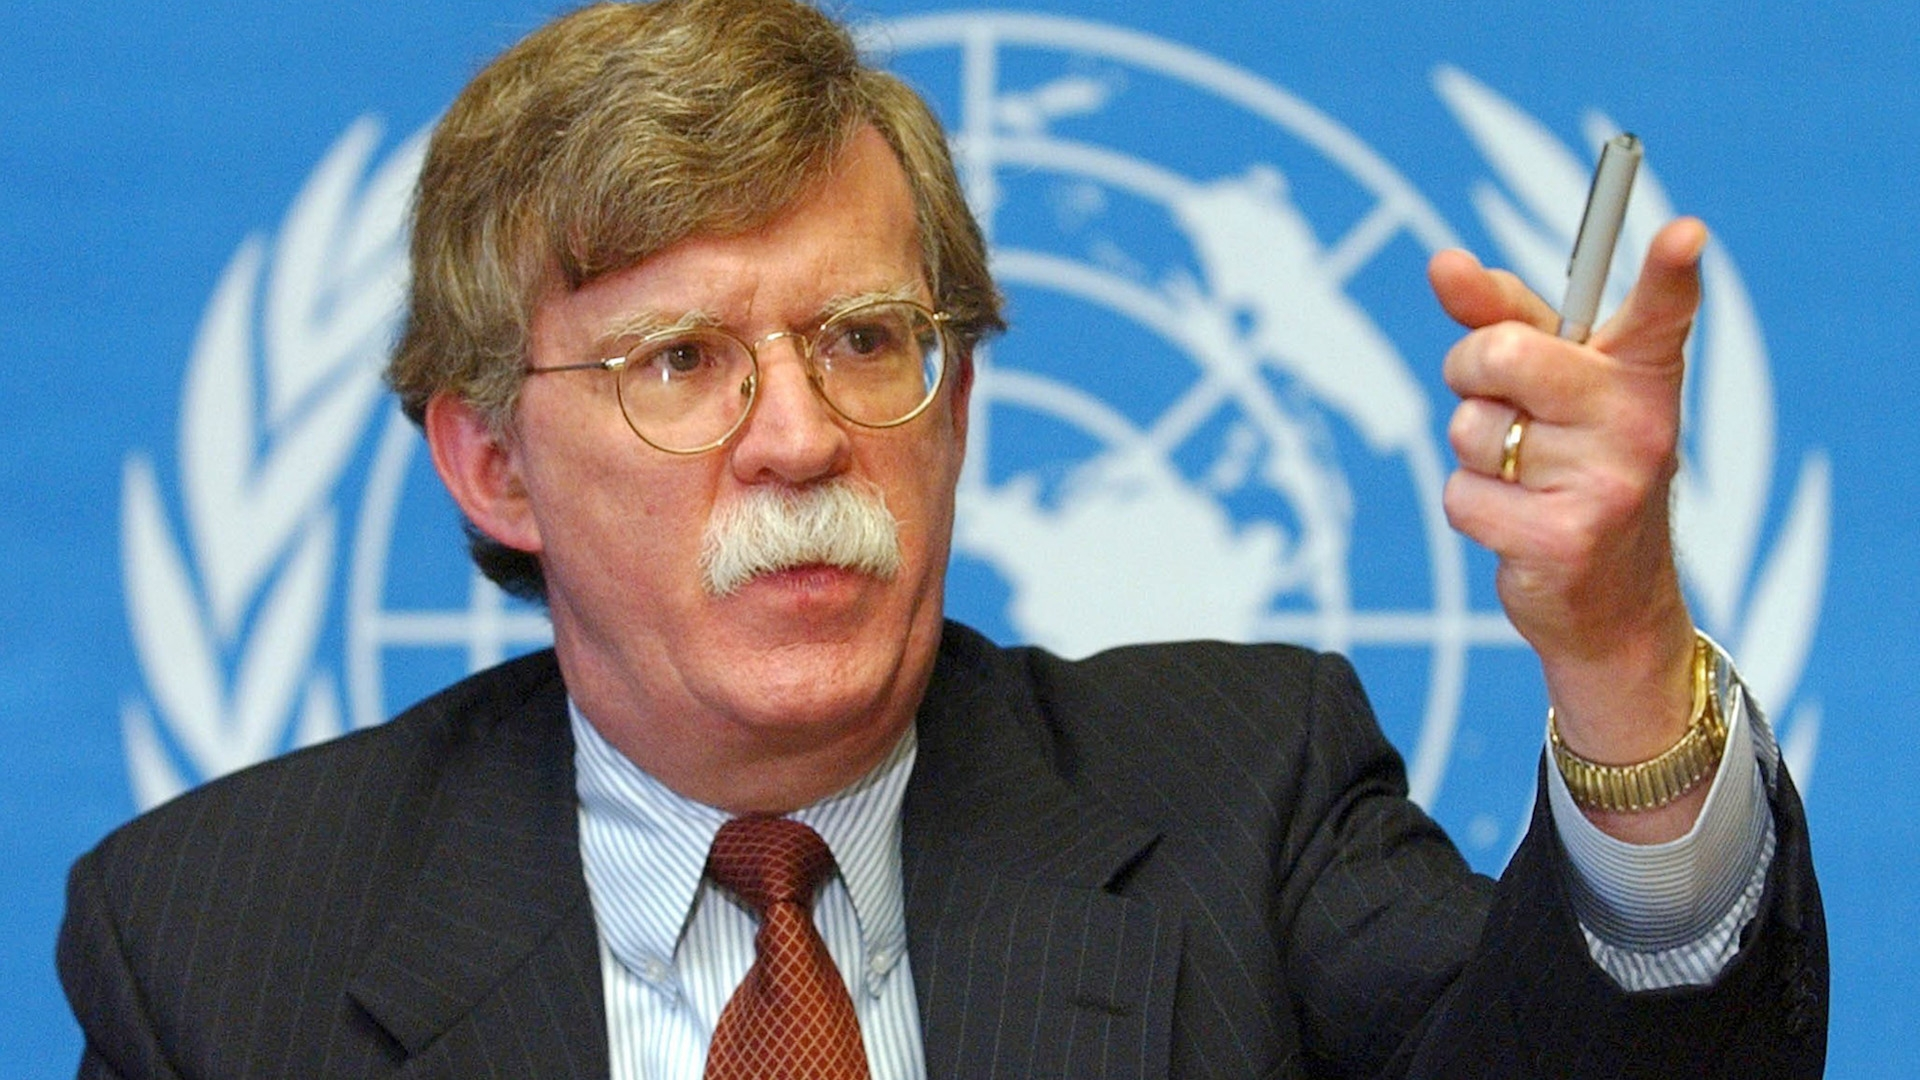 Bolton out as national security adviser after clashing with Trump